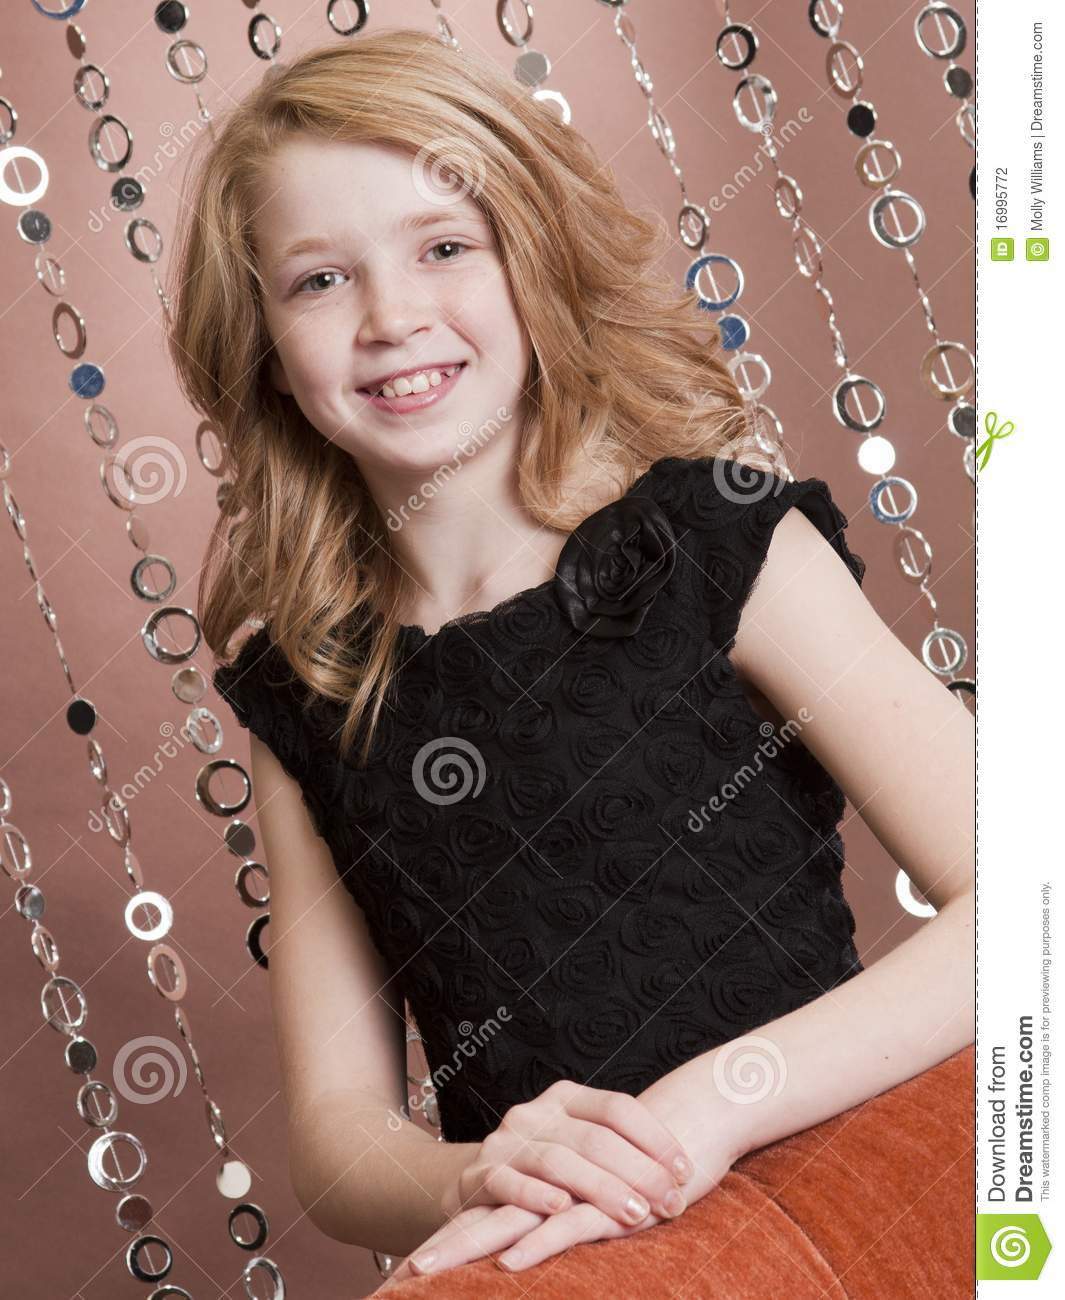 More similar stock images of ` Preteen Model 2 `